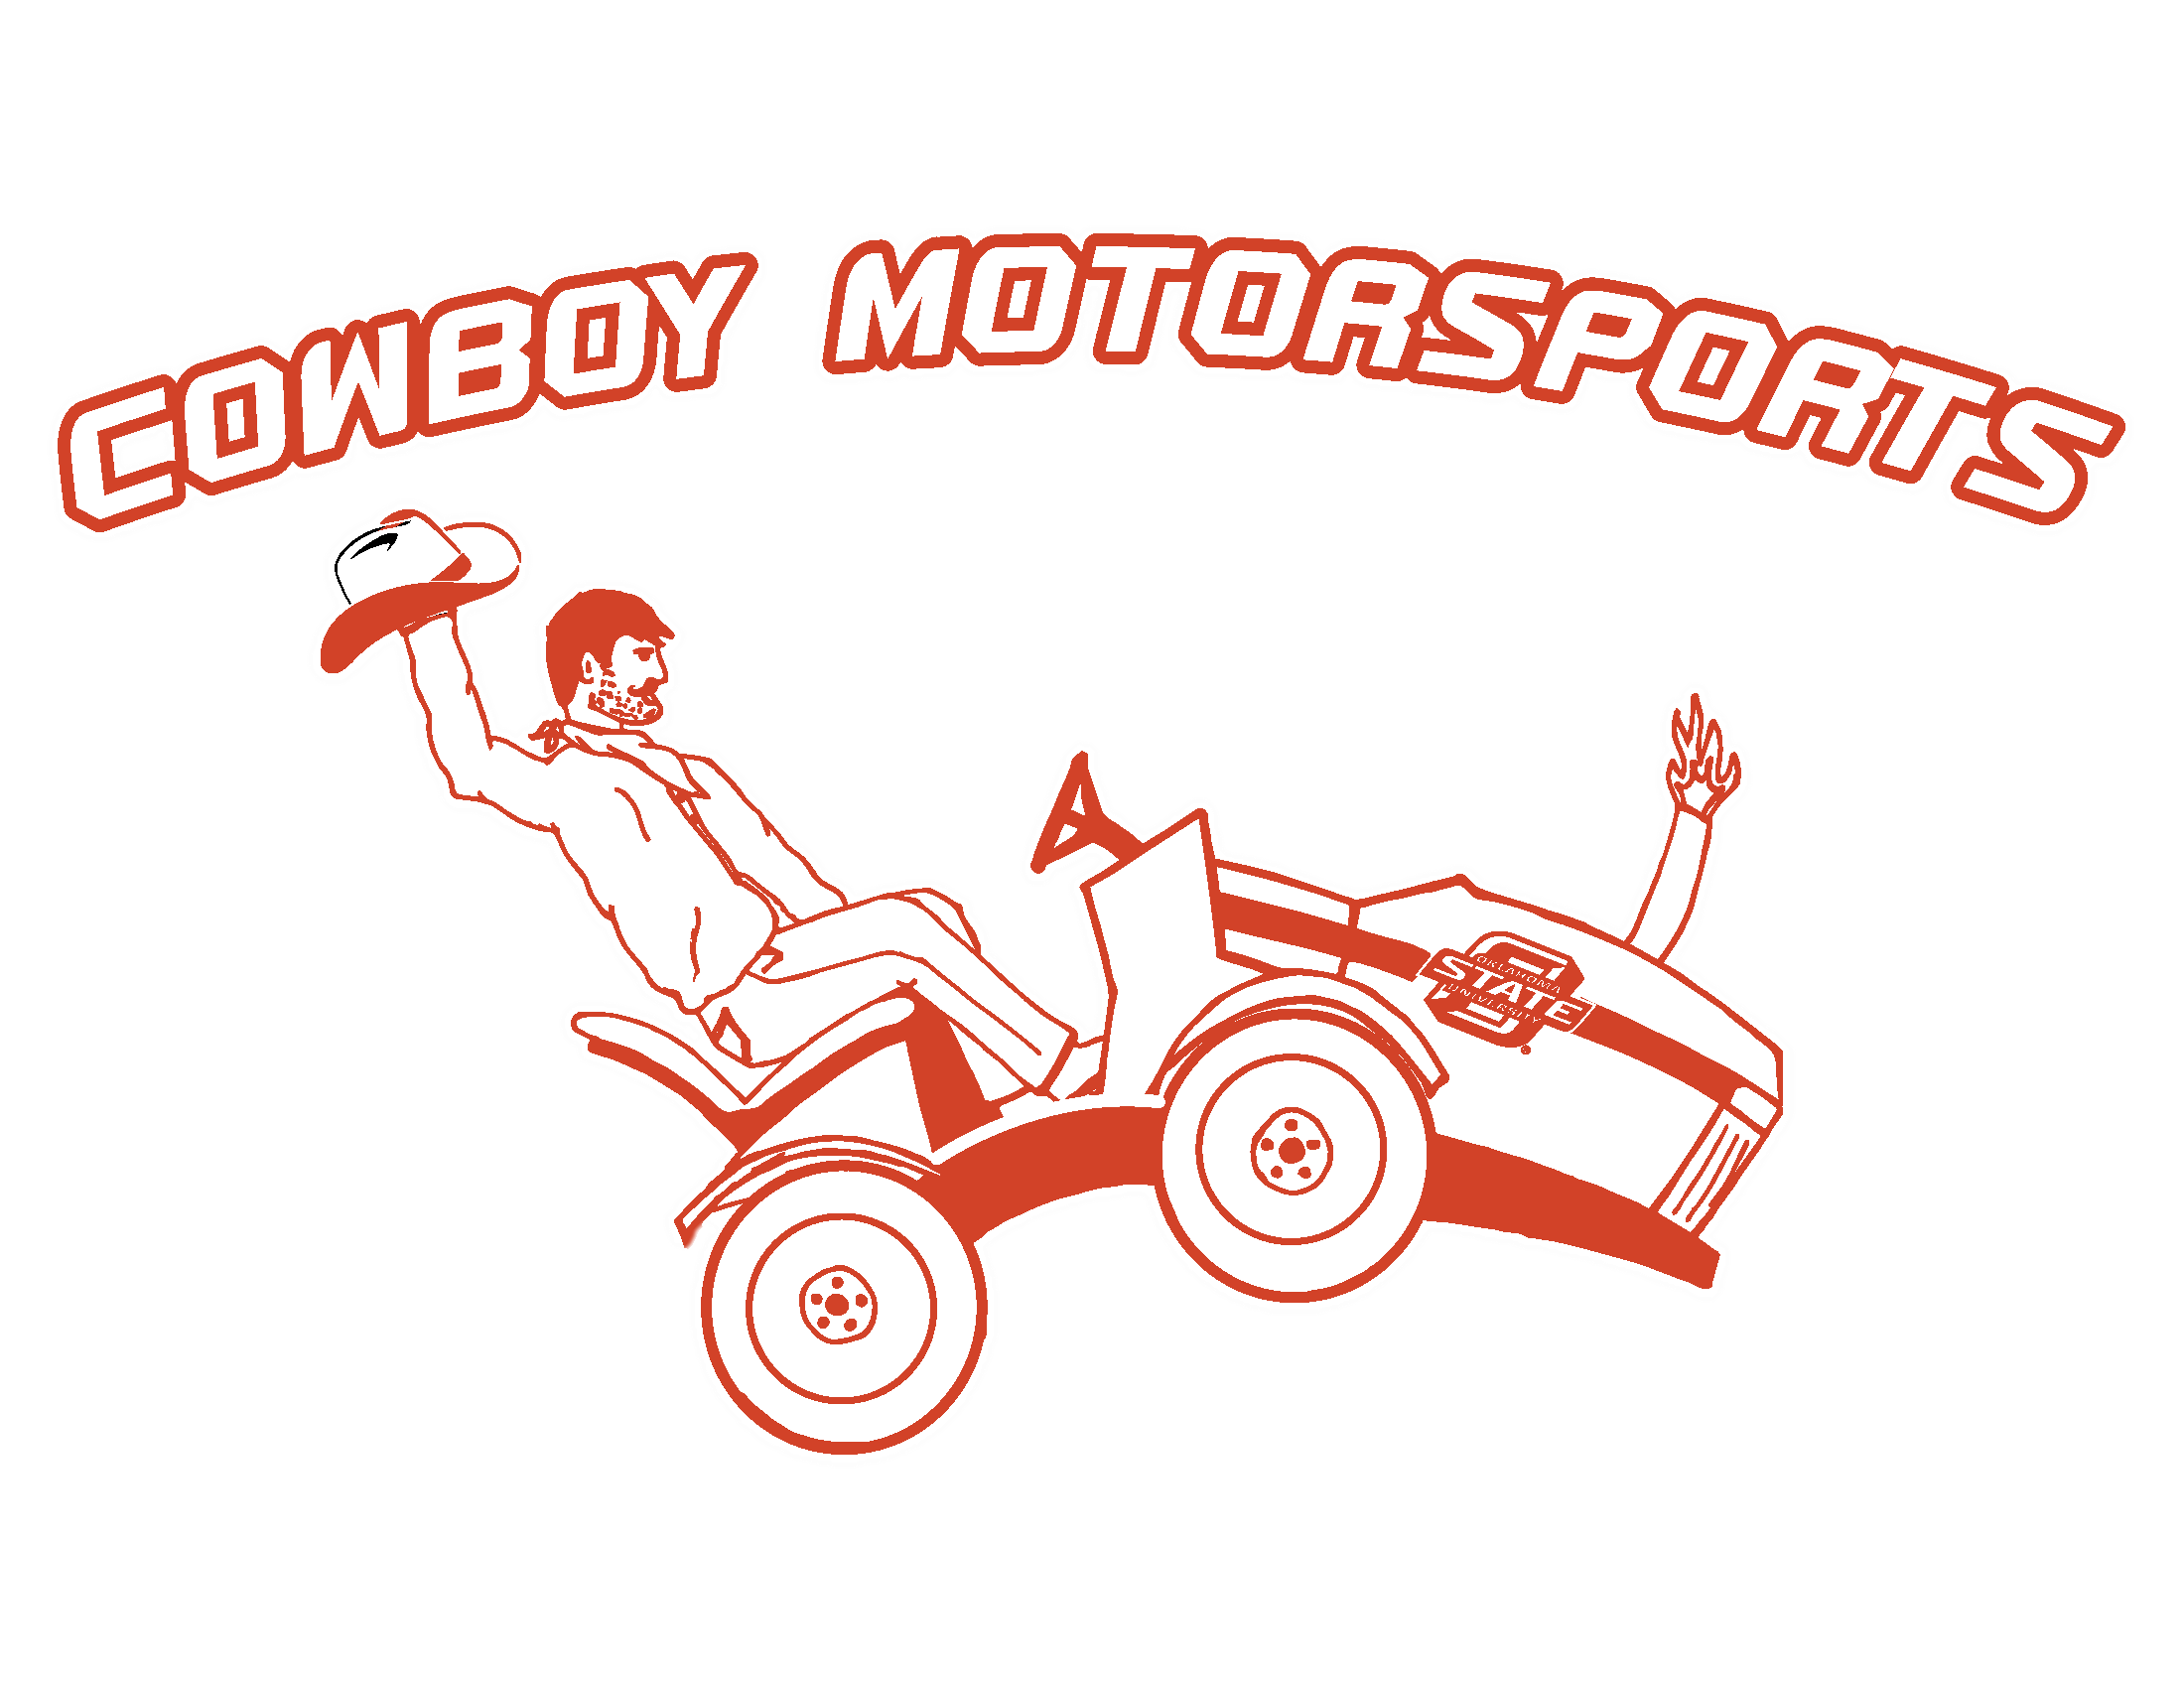 Excited clipart eager. Cowboy motorsports logo